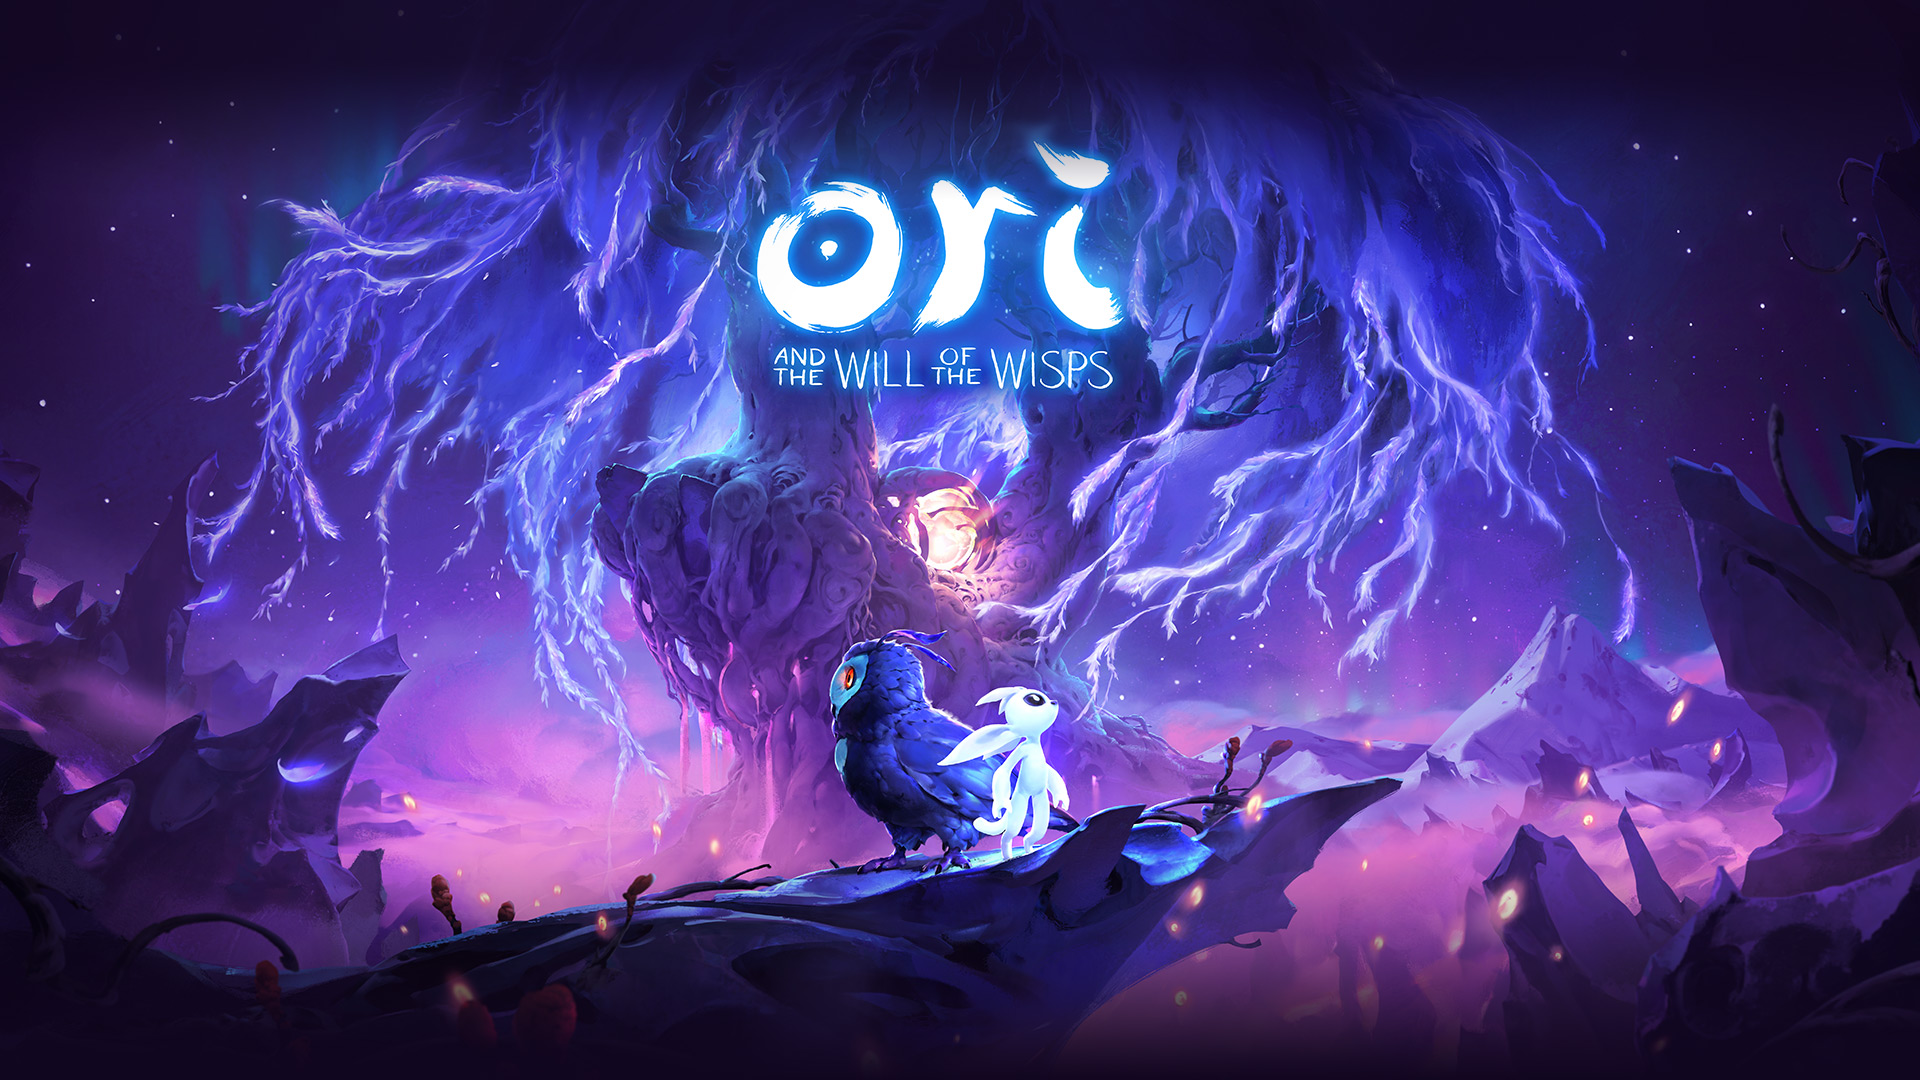 Ori and the Will of the Wisps, Ori står bredvid en uggla framför ett underligt lila träd